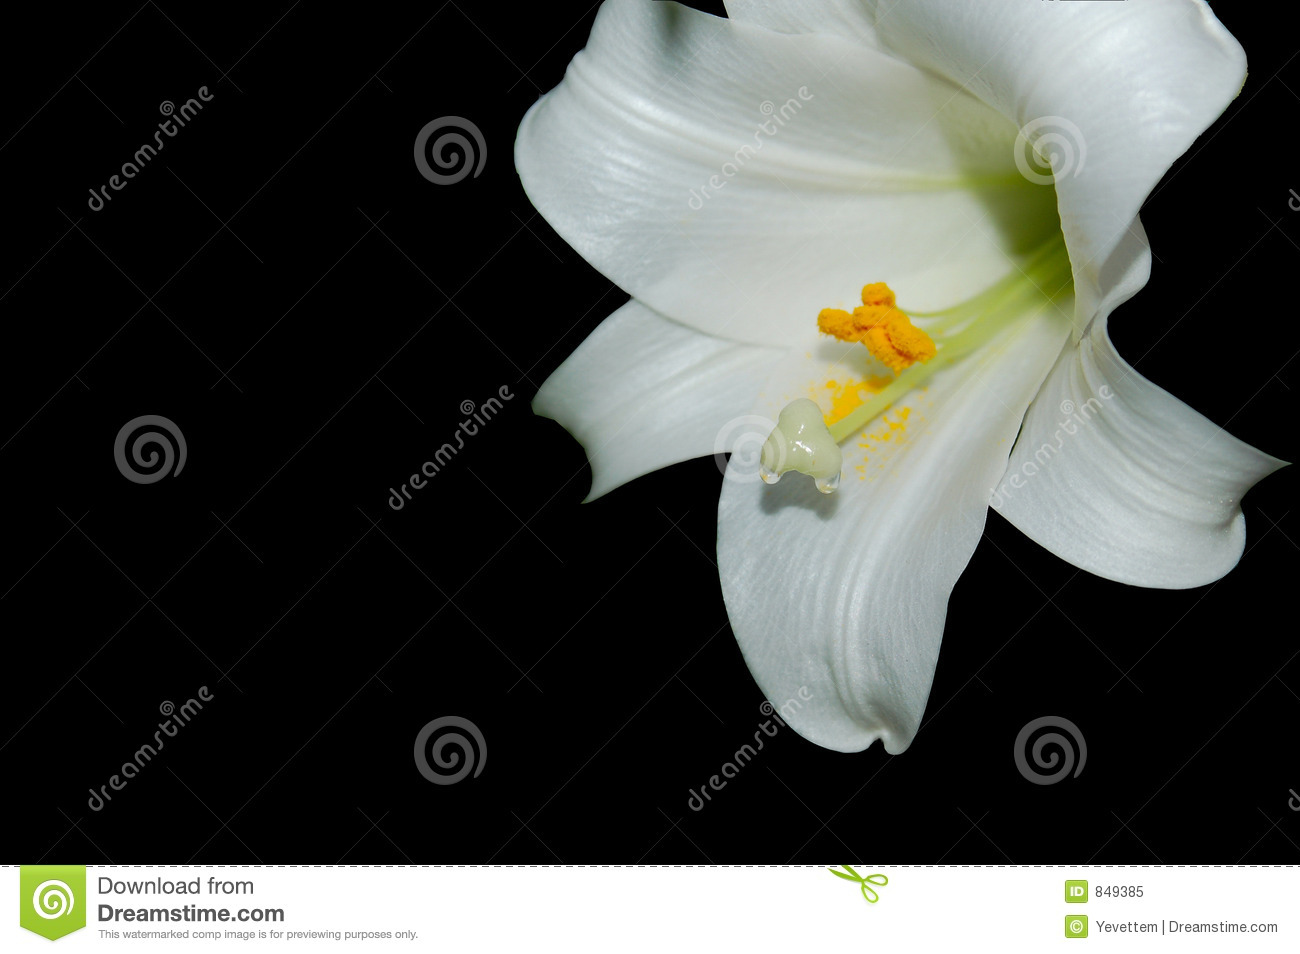 Easter Lily Dripping Nectar